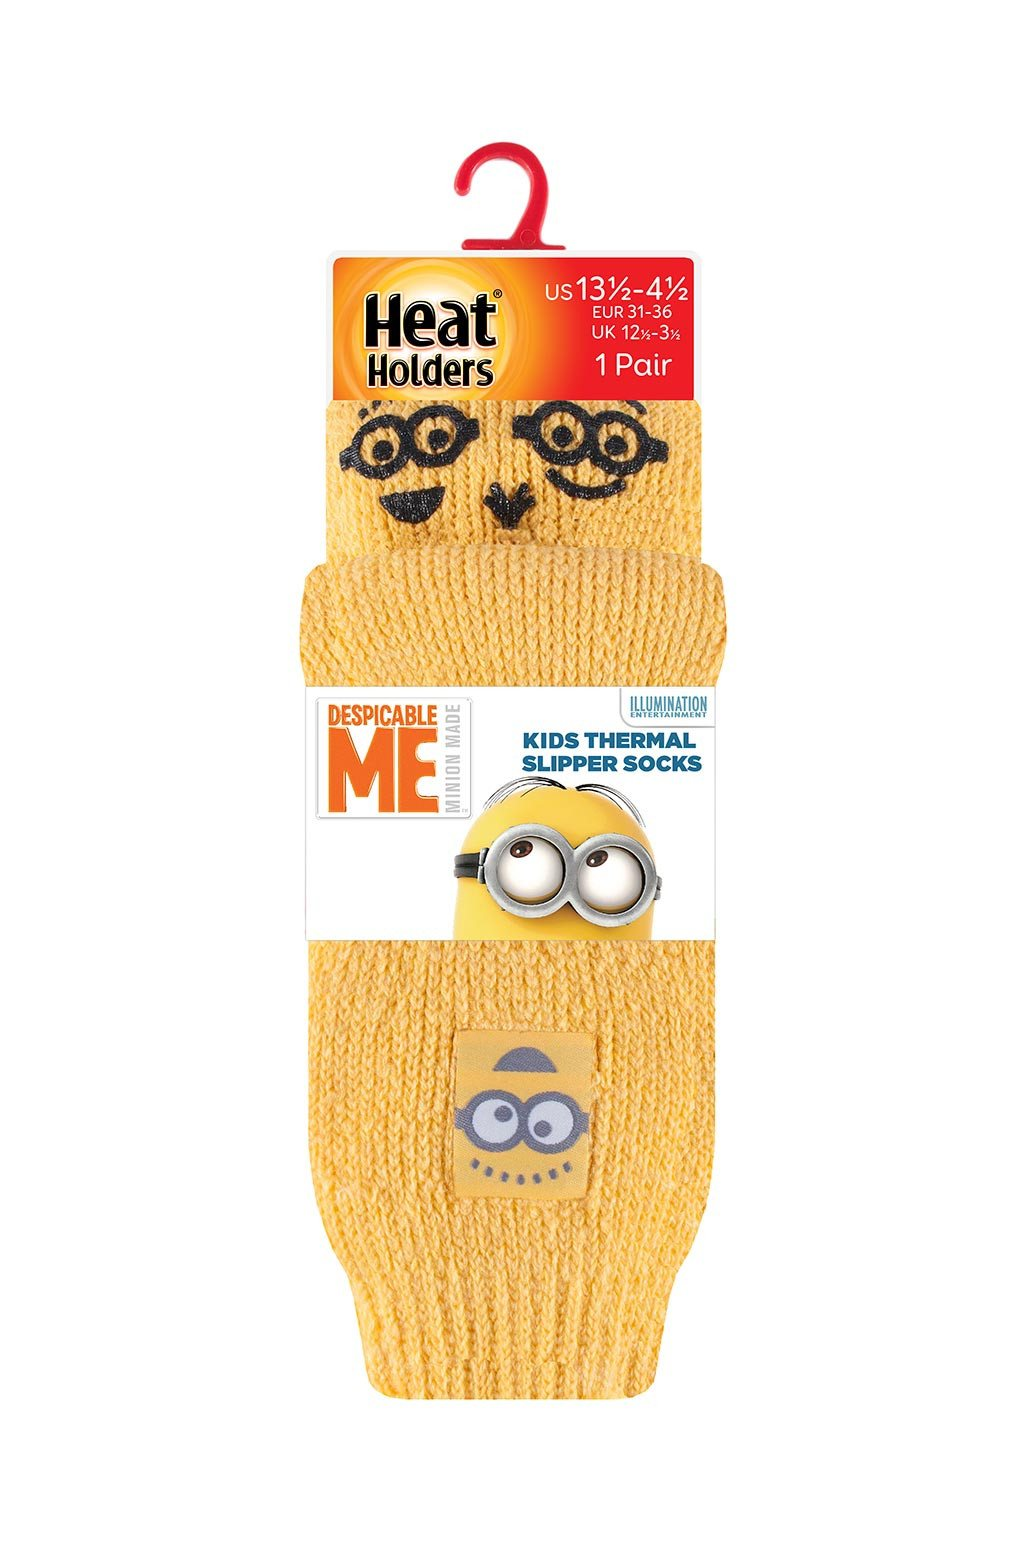 Minions Packaging